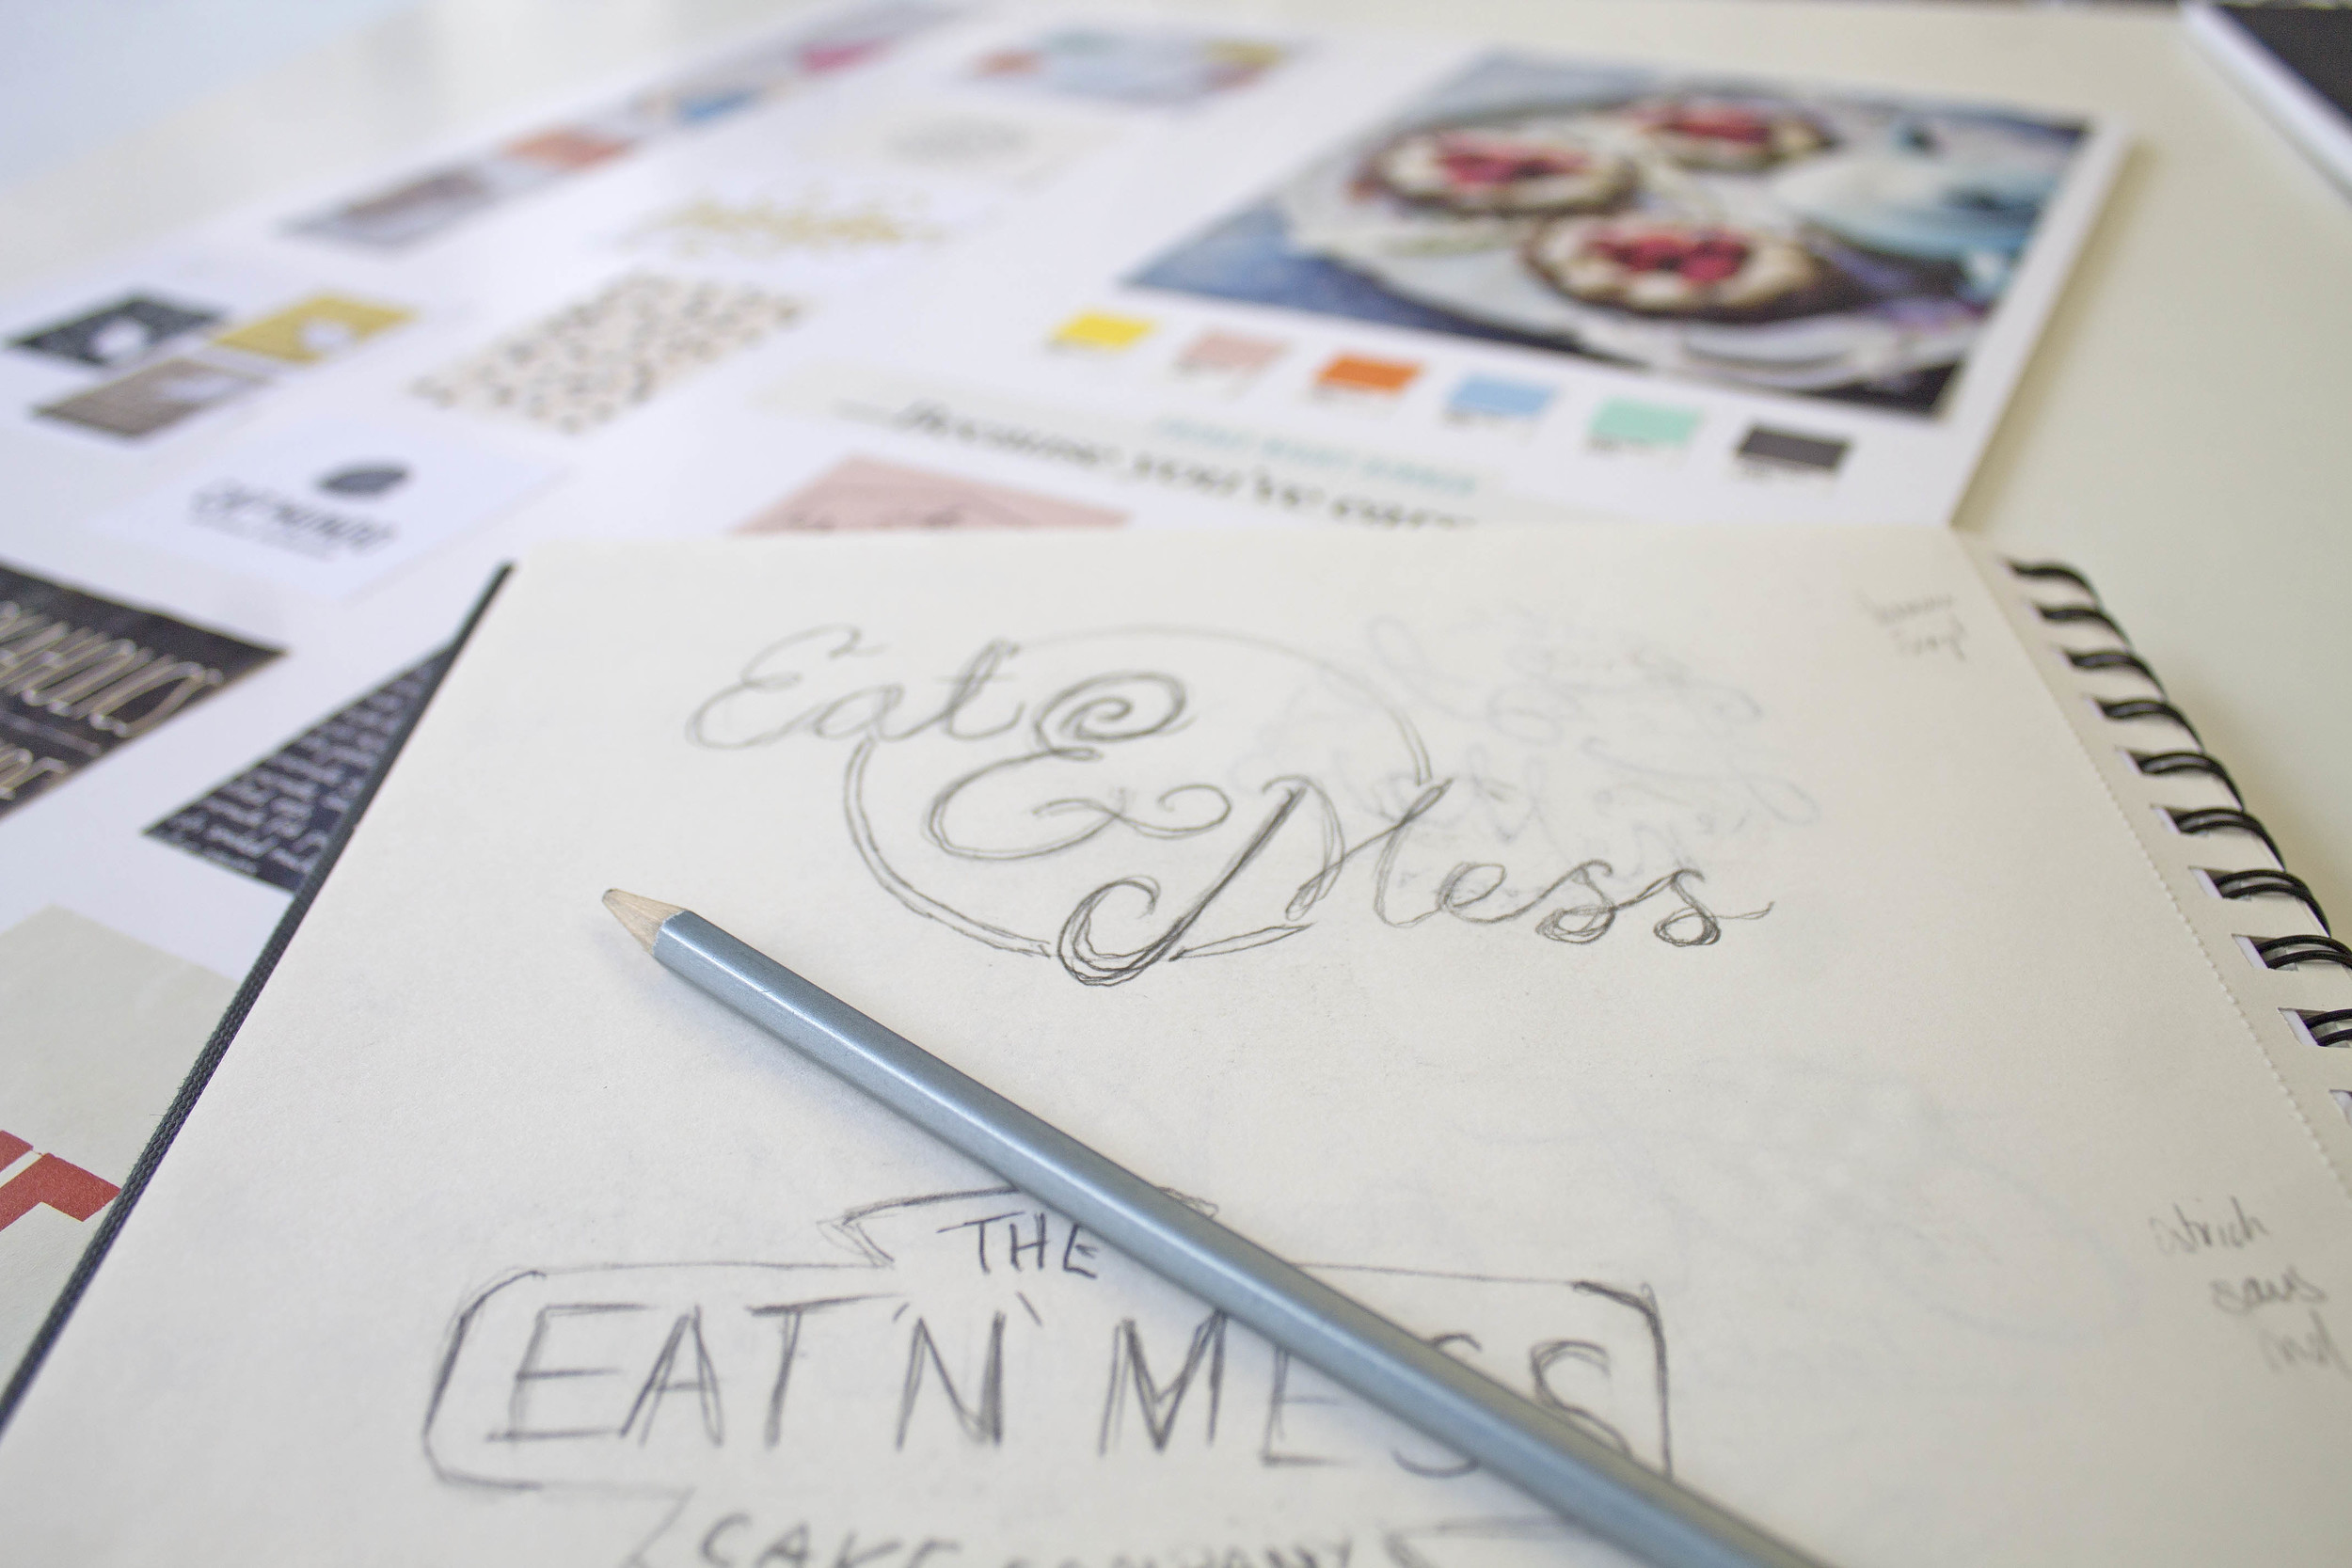 Eat N Mess gluten free cake shop logo design by Ditto Creative branding agency Kent